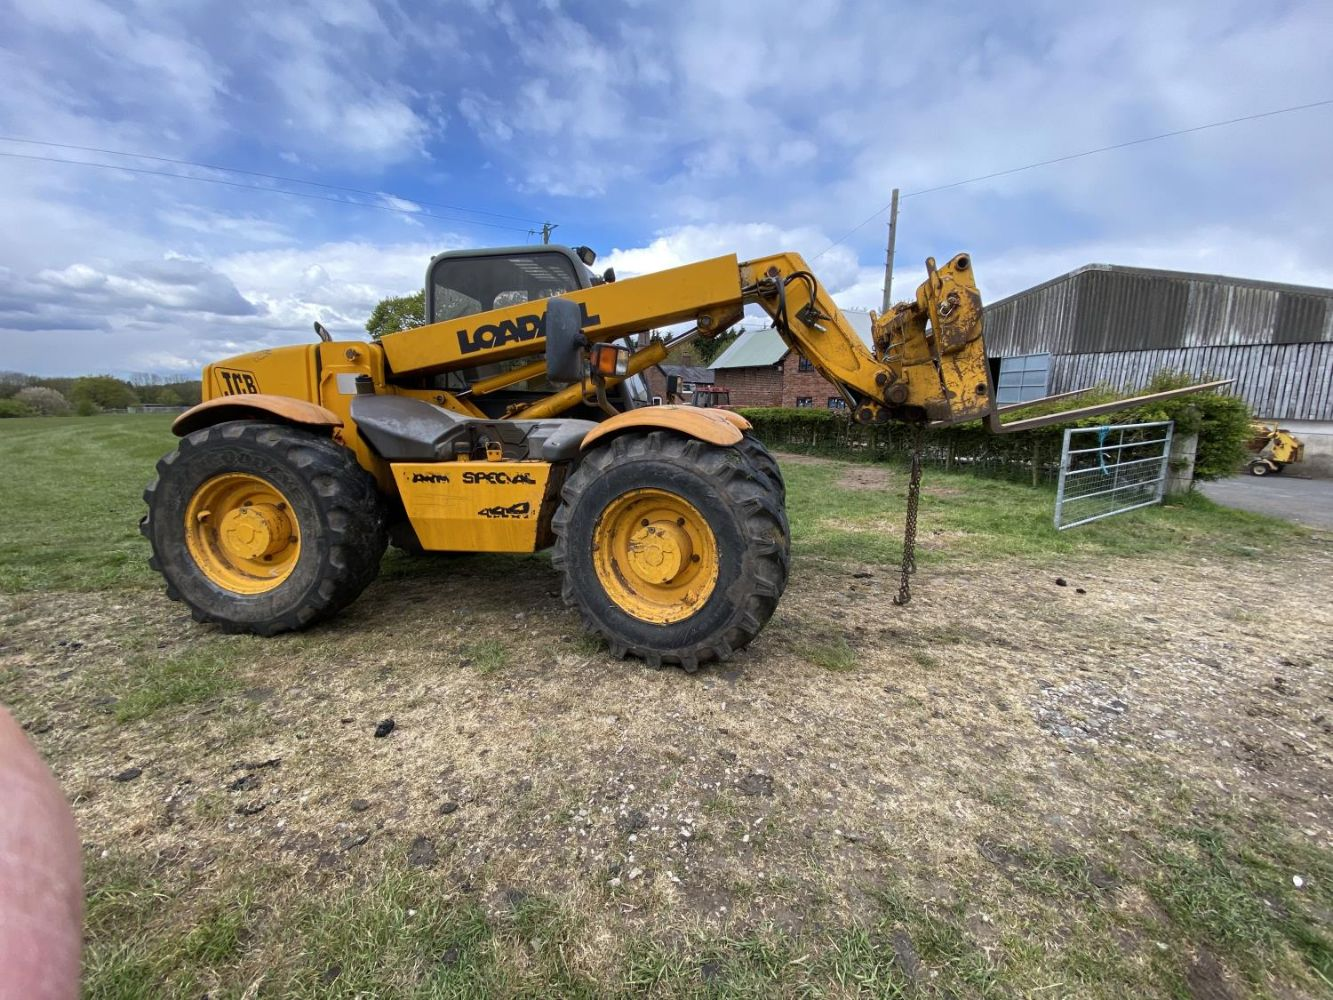 OFFSITE DISPERSAL AUCTION OF TRACTORS, FARM, MACHINERY IMPLEMENTS, TOOLS ETC AT BEECH TREE FARM, HIGH LEGH, KNUTSFORD, CHESHIRE WA16 6NR-NO VAT